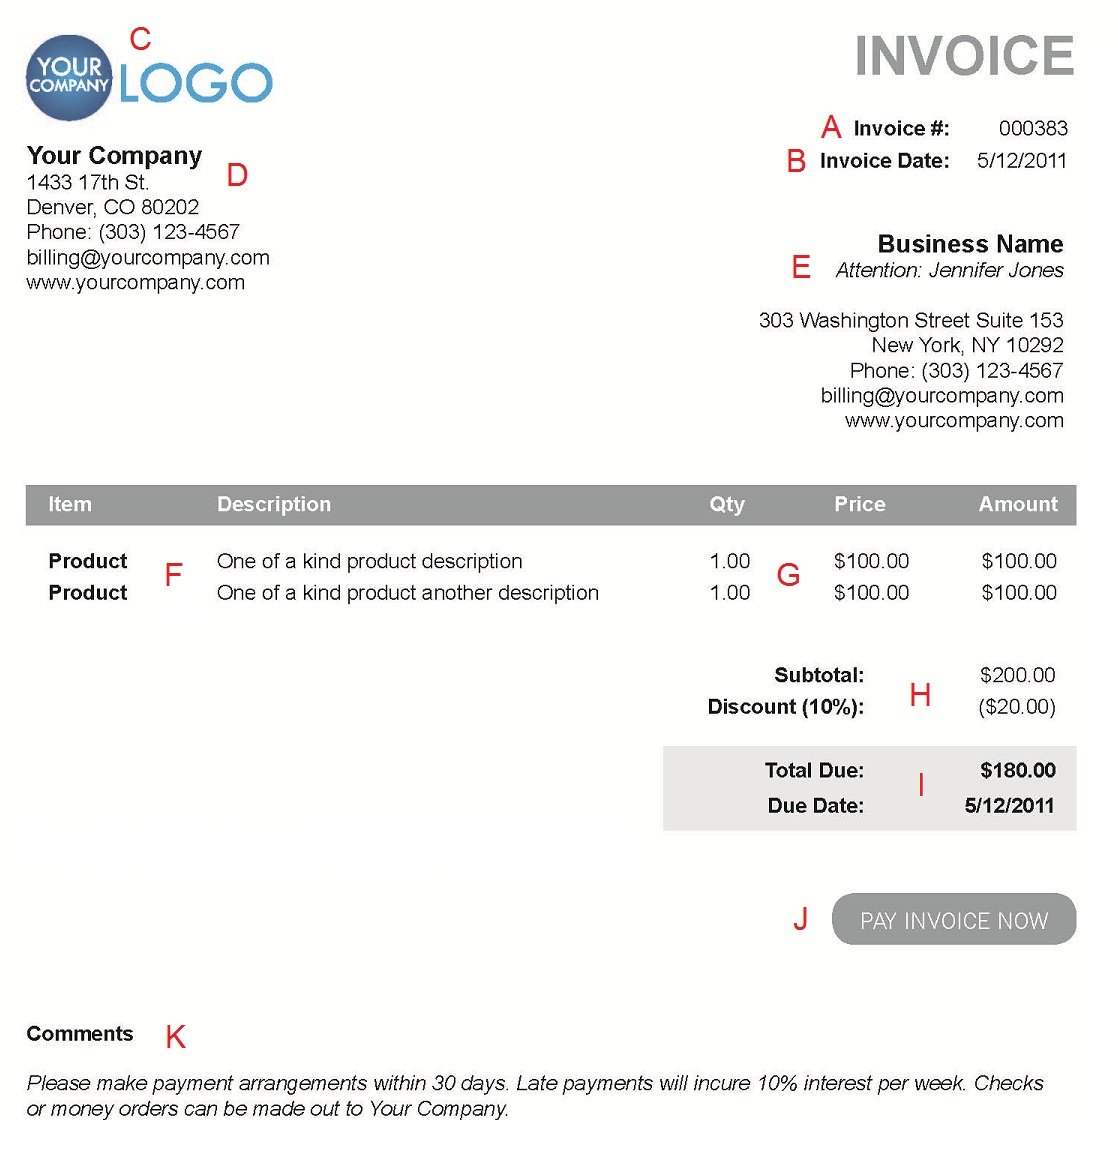 Centralasianshepherdus  Marvellous The  Different Sections Of An Electronic Payment Invoice With Exciting A  With Awesome Invoice Factoring Company Also Adp Invoice In Addition How To Make A Invoice And What Is A Commercial Invoice As Well As Invoice Journal Additionally Asap Invoice From Paysimplecom With Centralasianshepherdus  Exciting The  Different Sections Of An Electronic Payment Invoice With Awesome A  And Marvellous Invoice Factoring Company Also Adp Invoice In Addition How To Make A Invoice From Paysimplecom